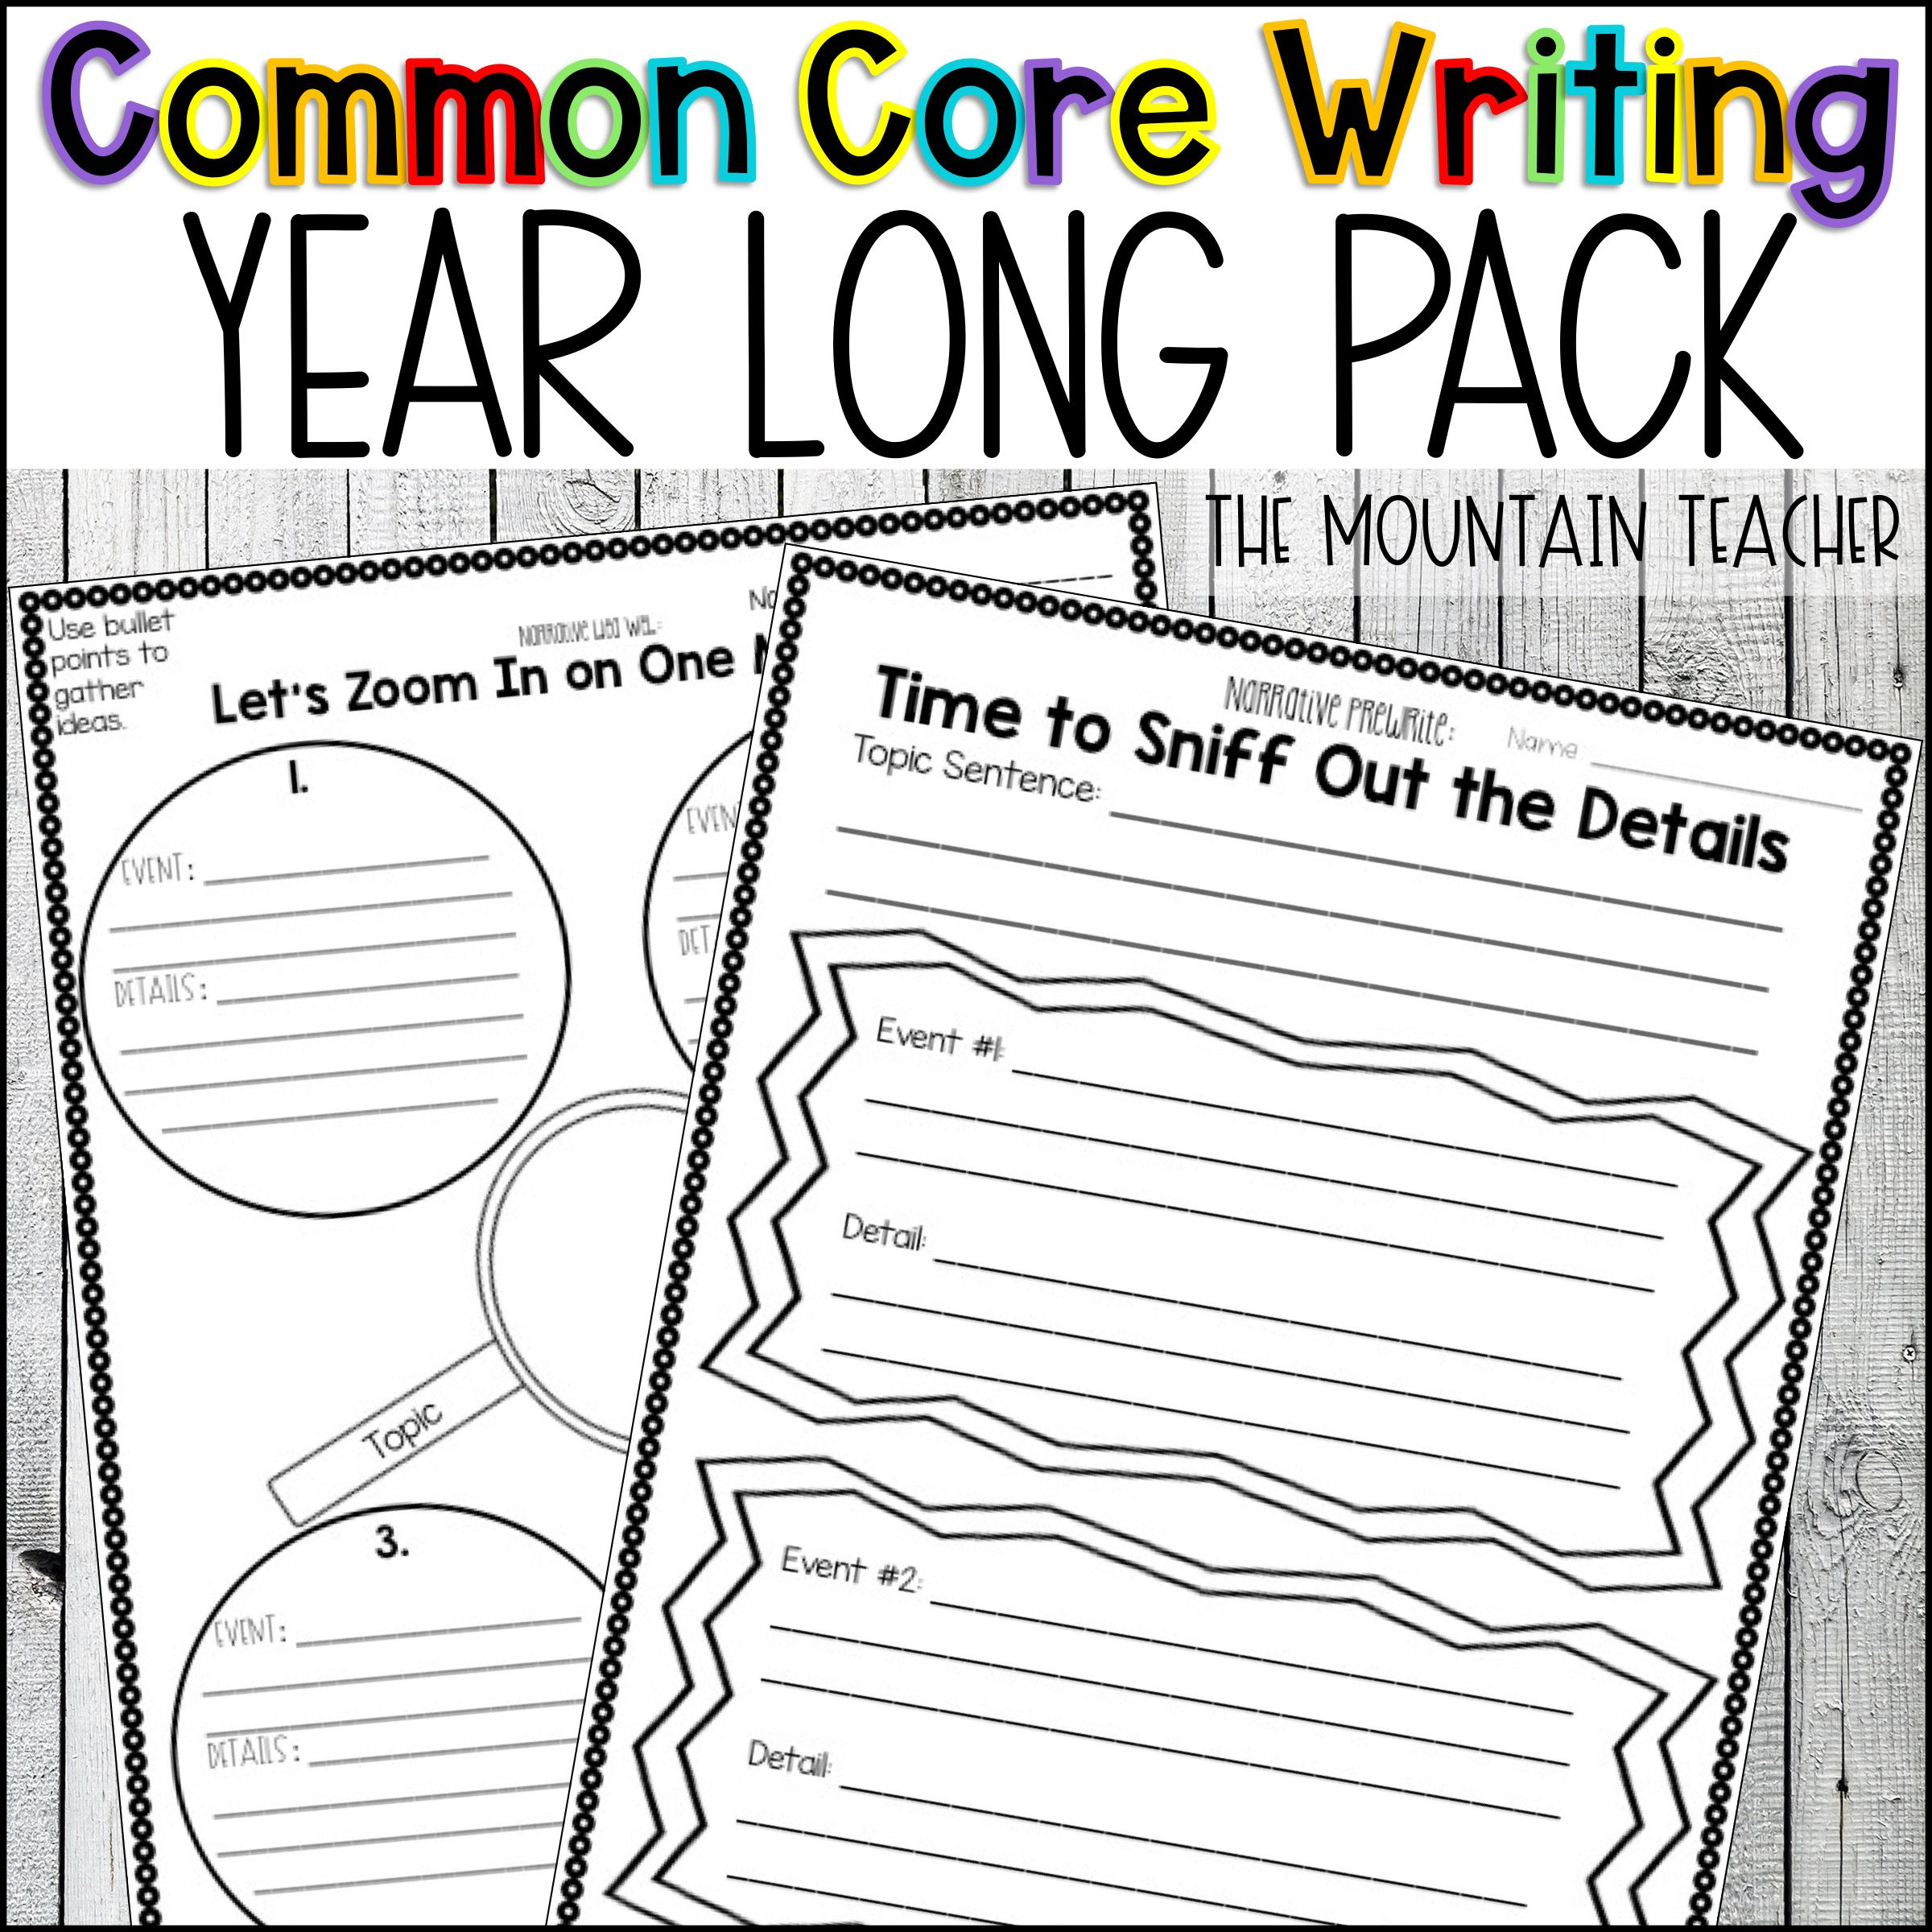 Common Core Writing Pack for Opinion Narrative and Informative Writing Templates By The Mountain Teacher